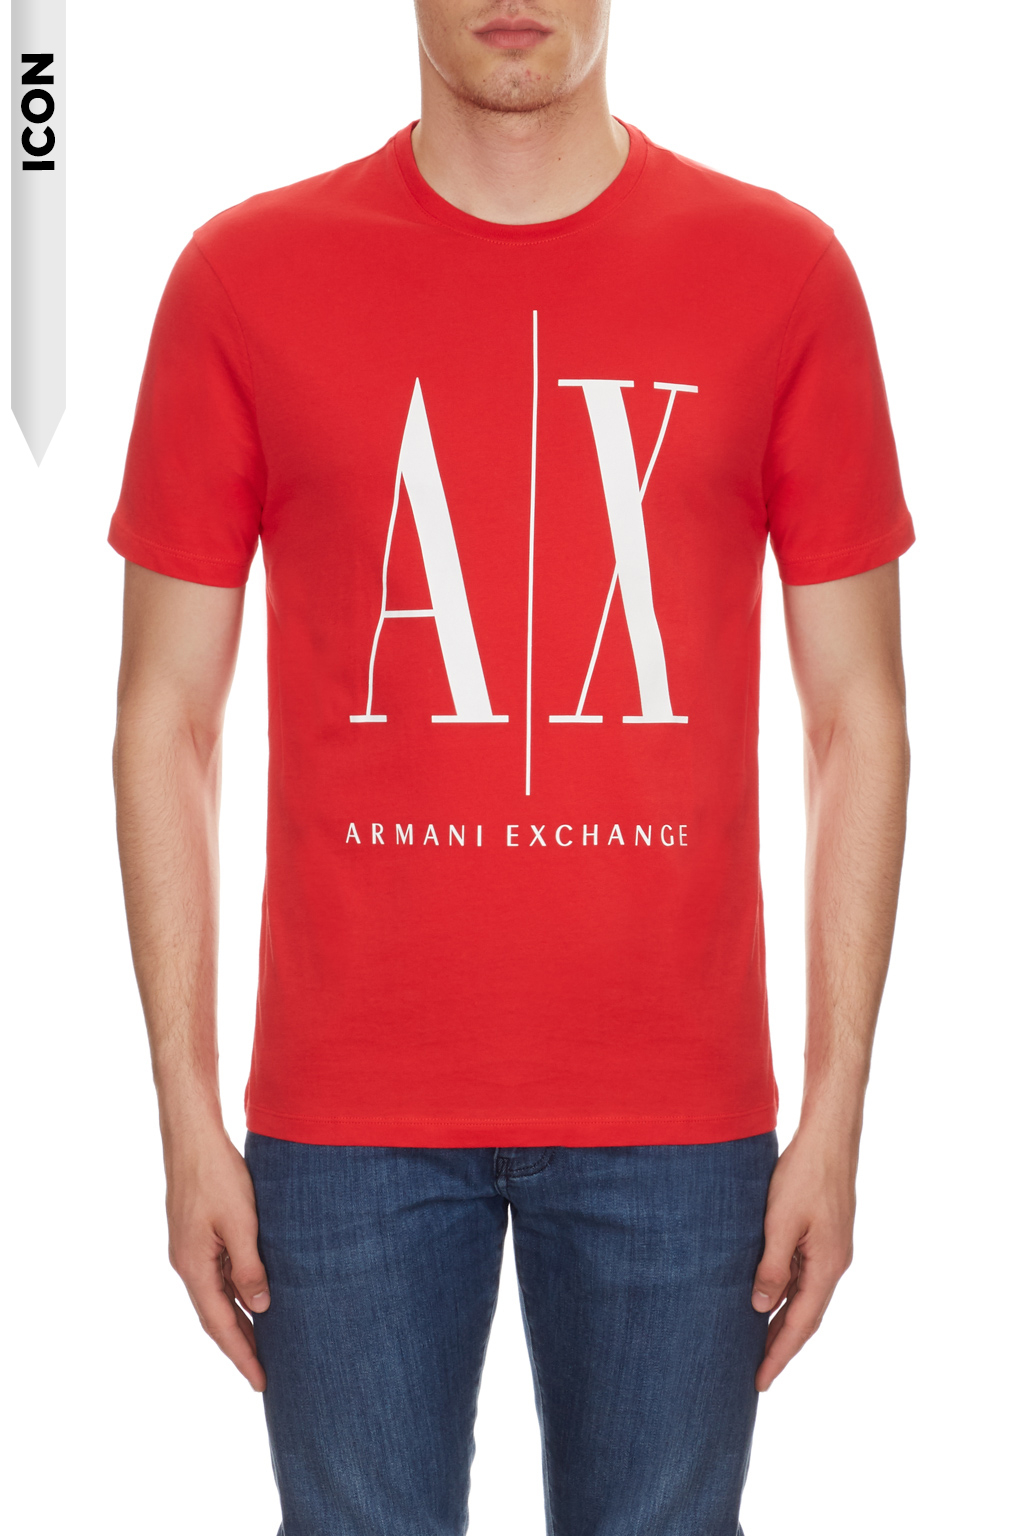 T-shirt manica corta uomo ARMANI EXCHANGE icon A/X